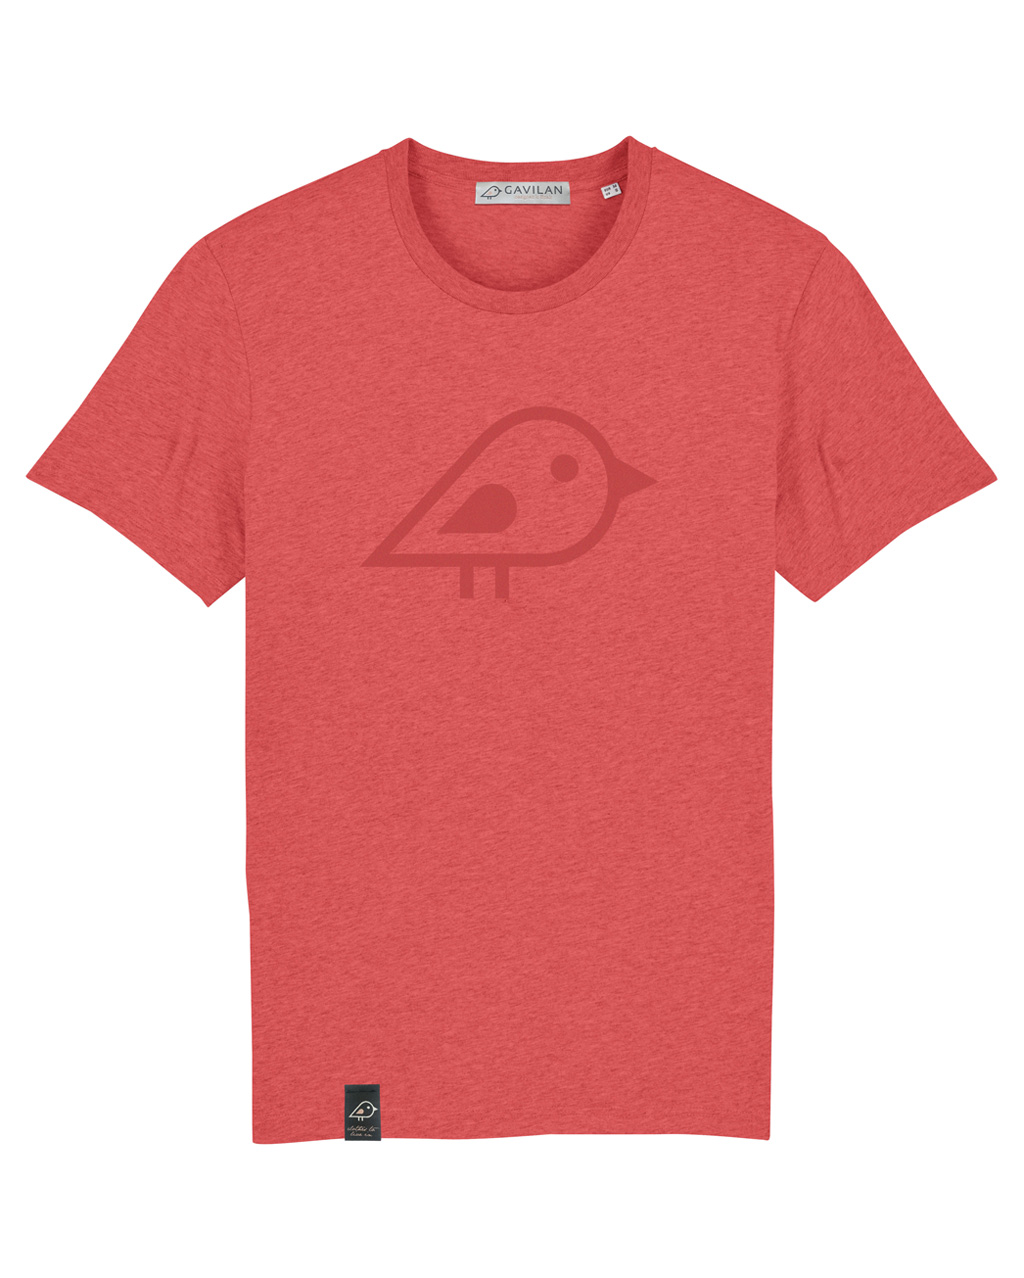 Camiseta bird coral clean